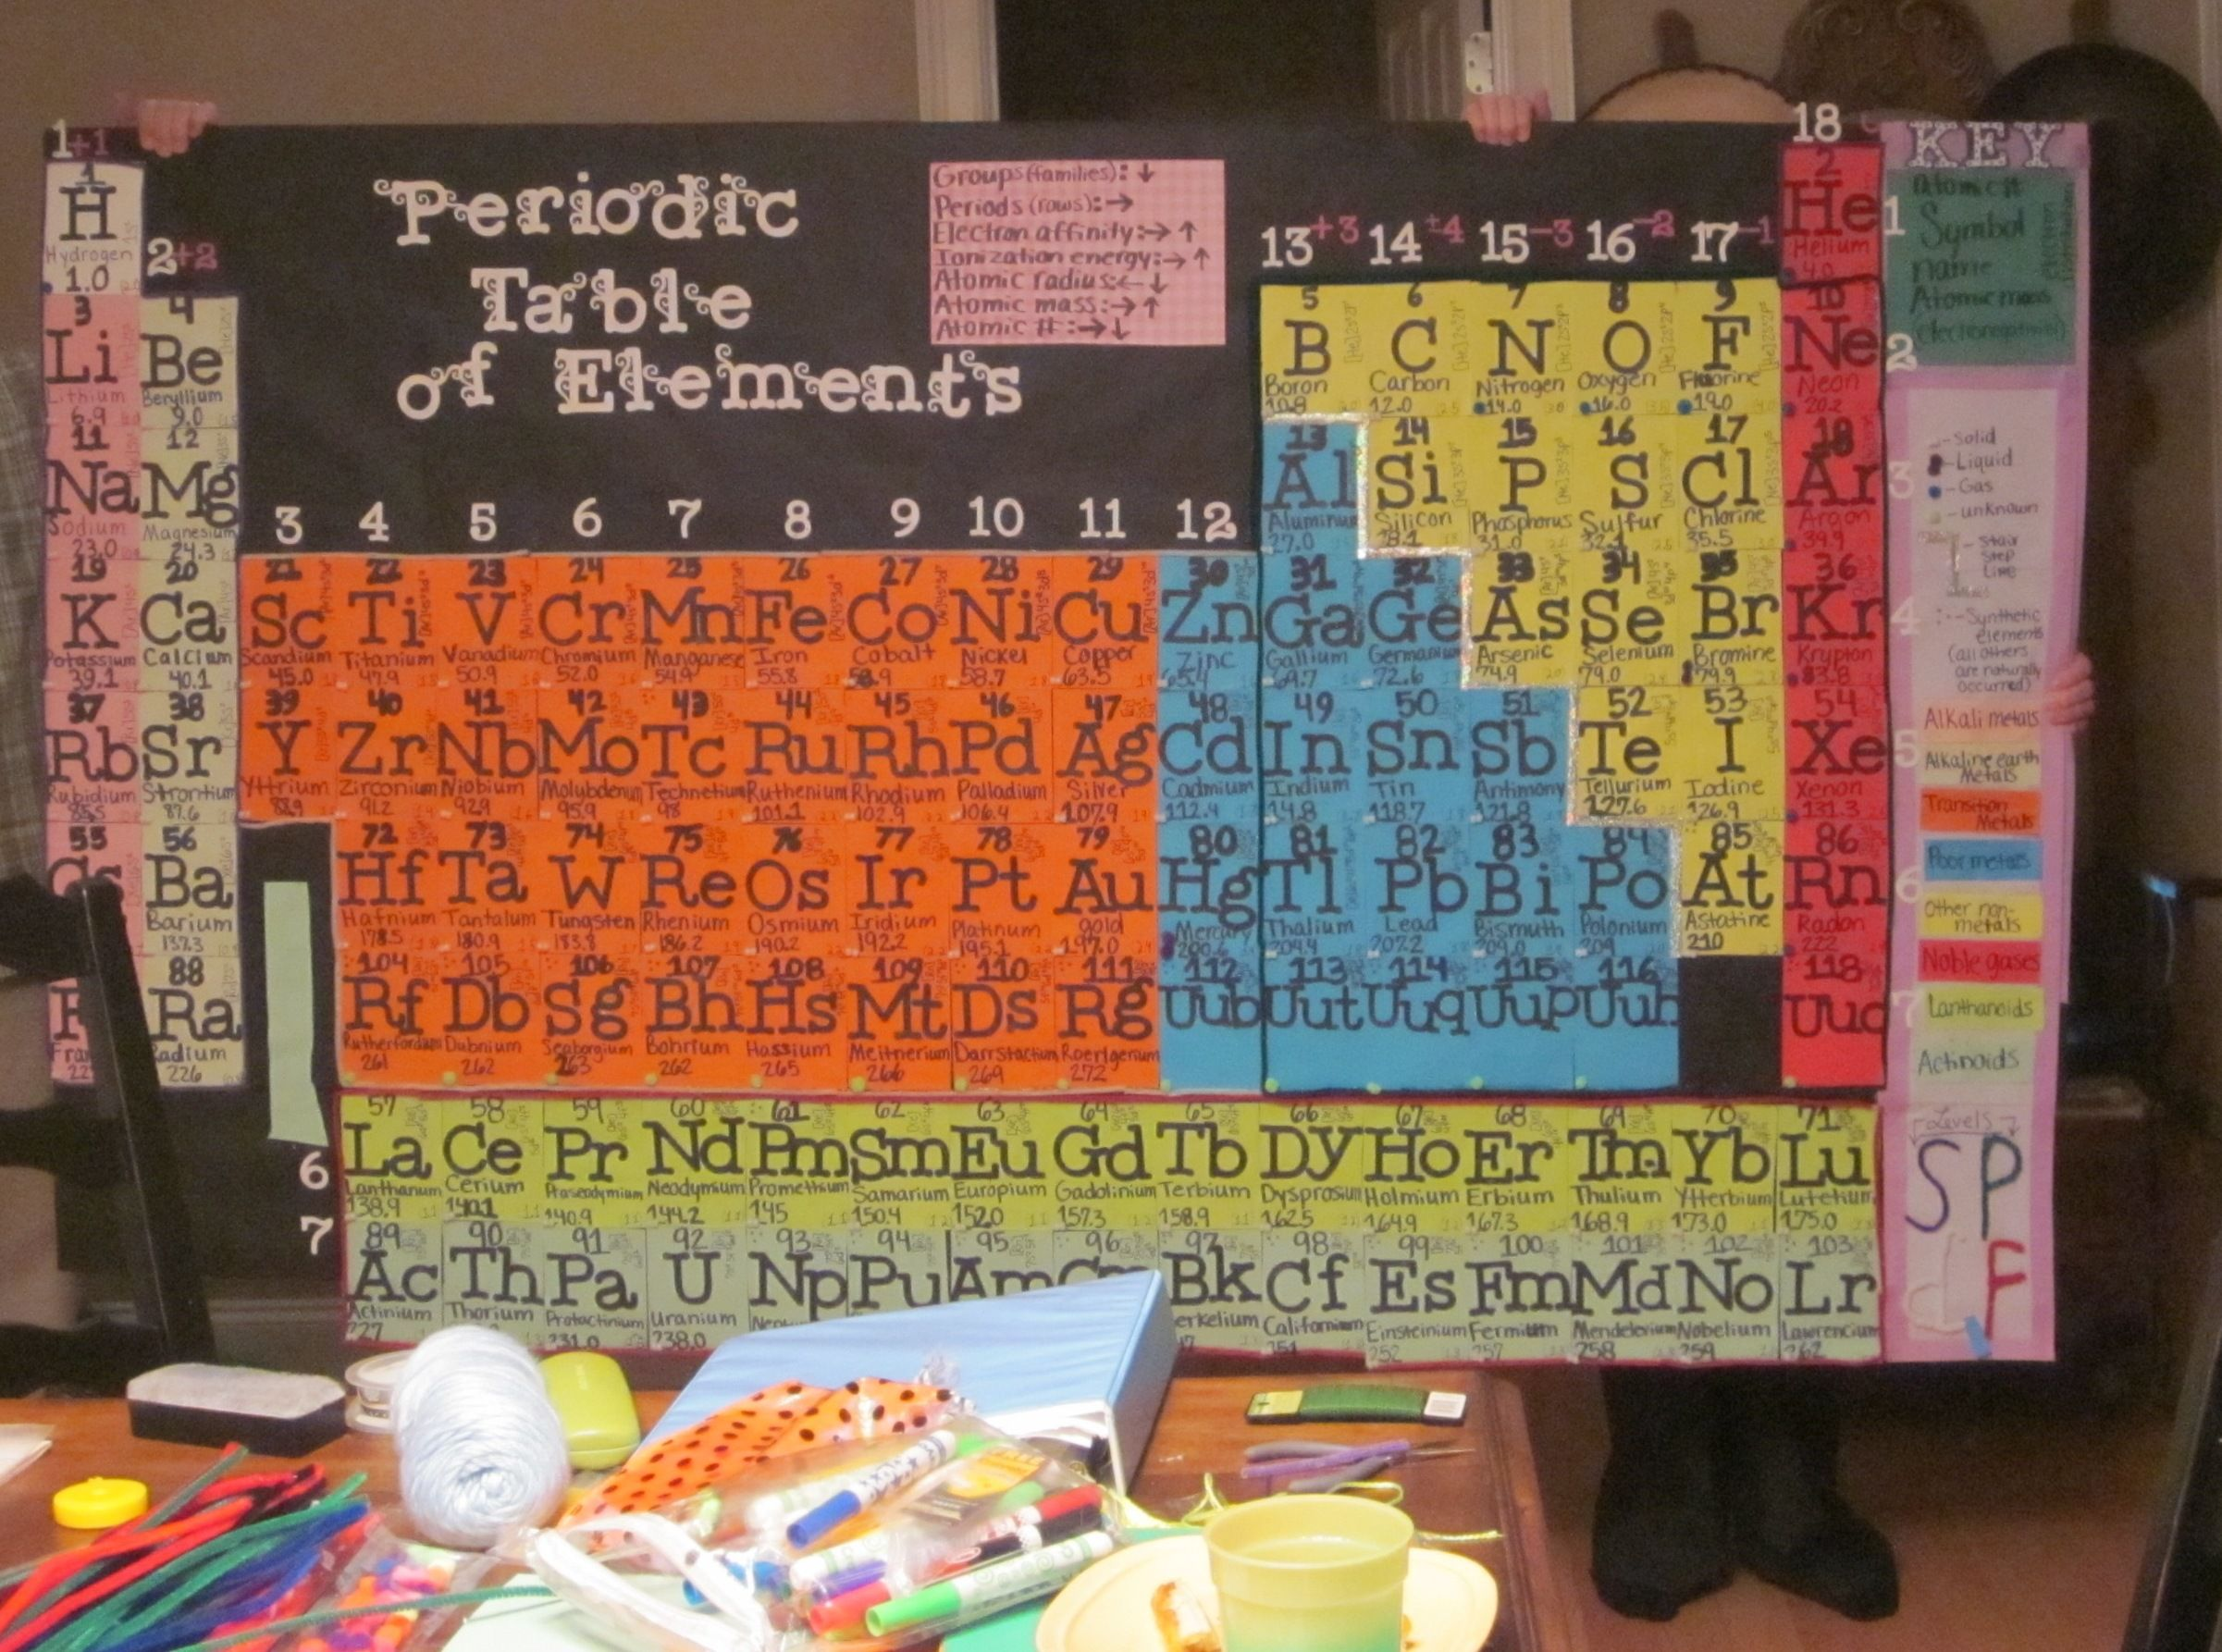 New periodic table labeled alkaline earth metals earth table labeled periodic alkaline metals on pinterest ro ideas ryan pin by education urtaz Choice Image